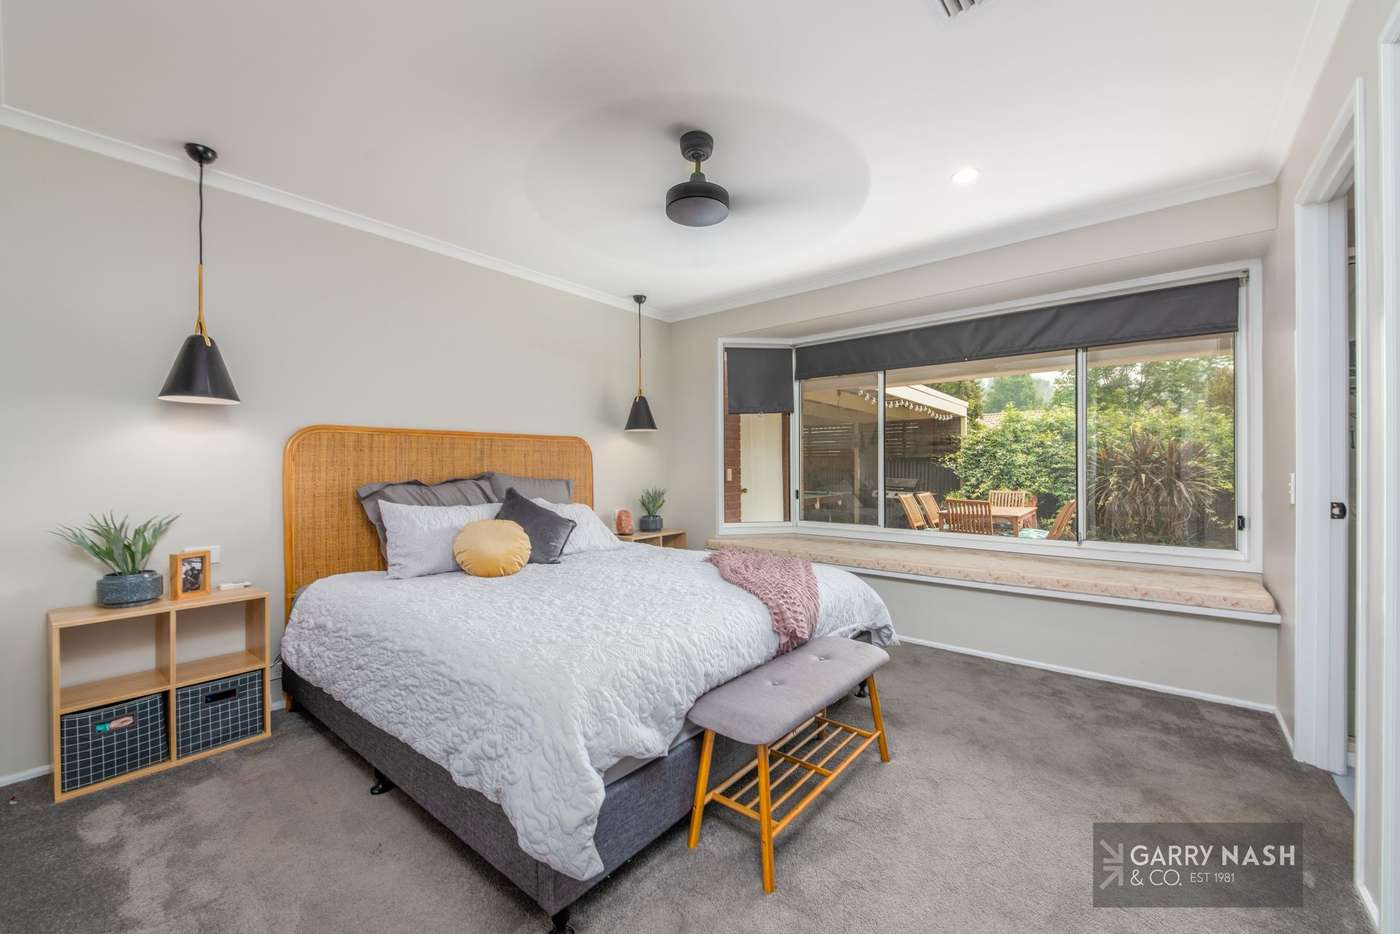 Seventh view of Homely house listing, 3 Grace Court, Wangaratta VIC 3677